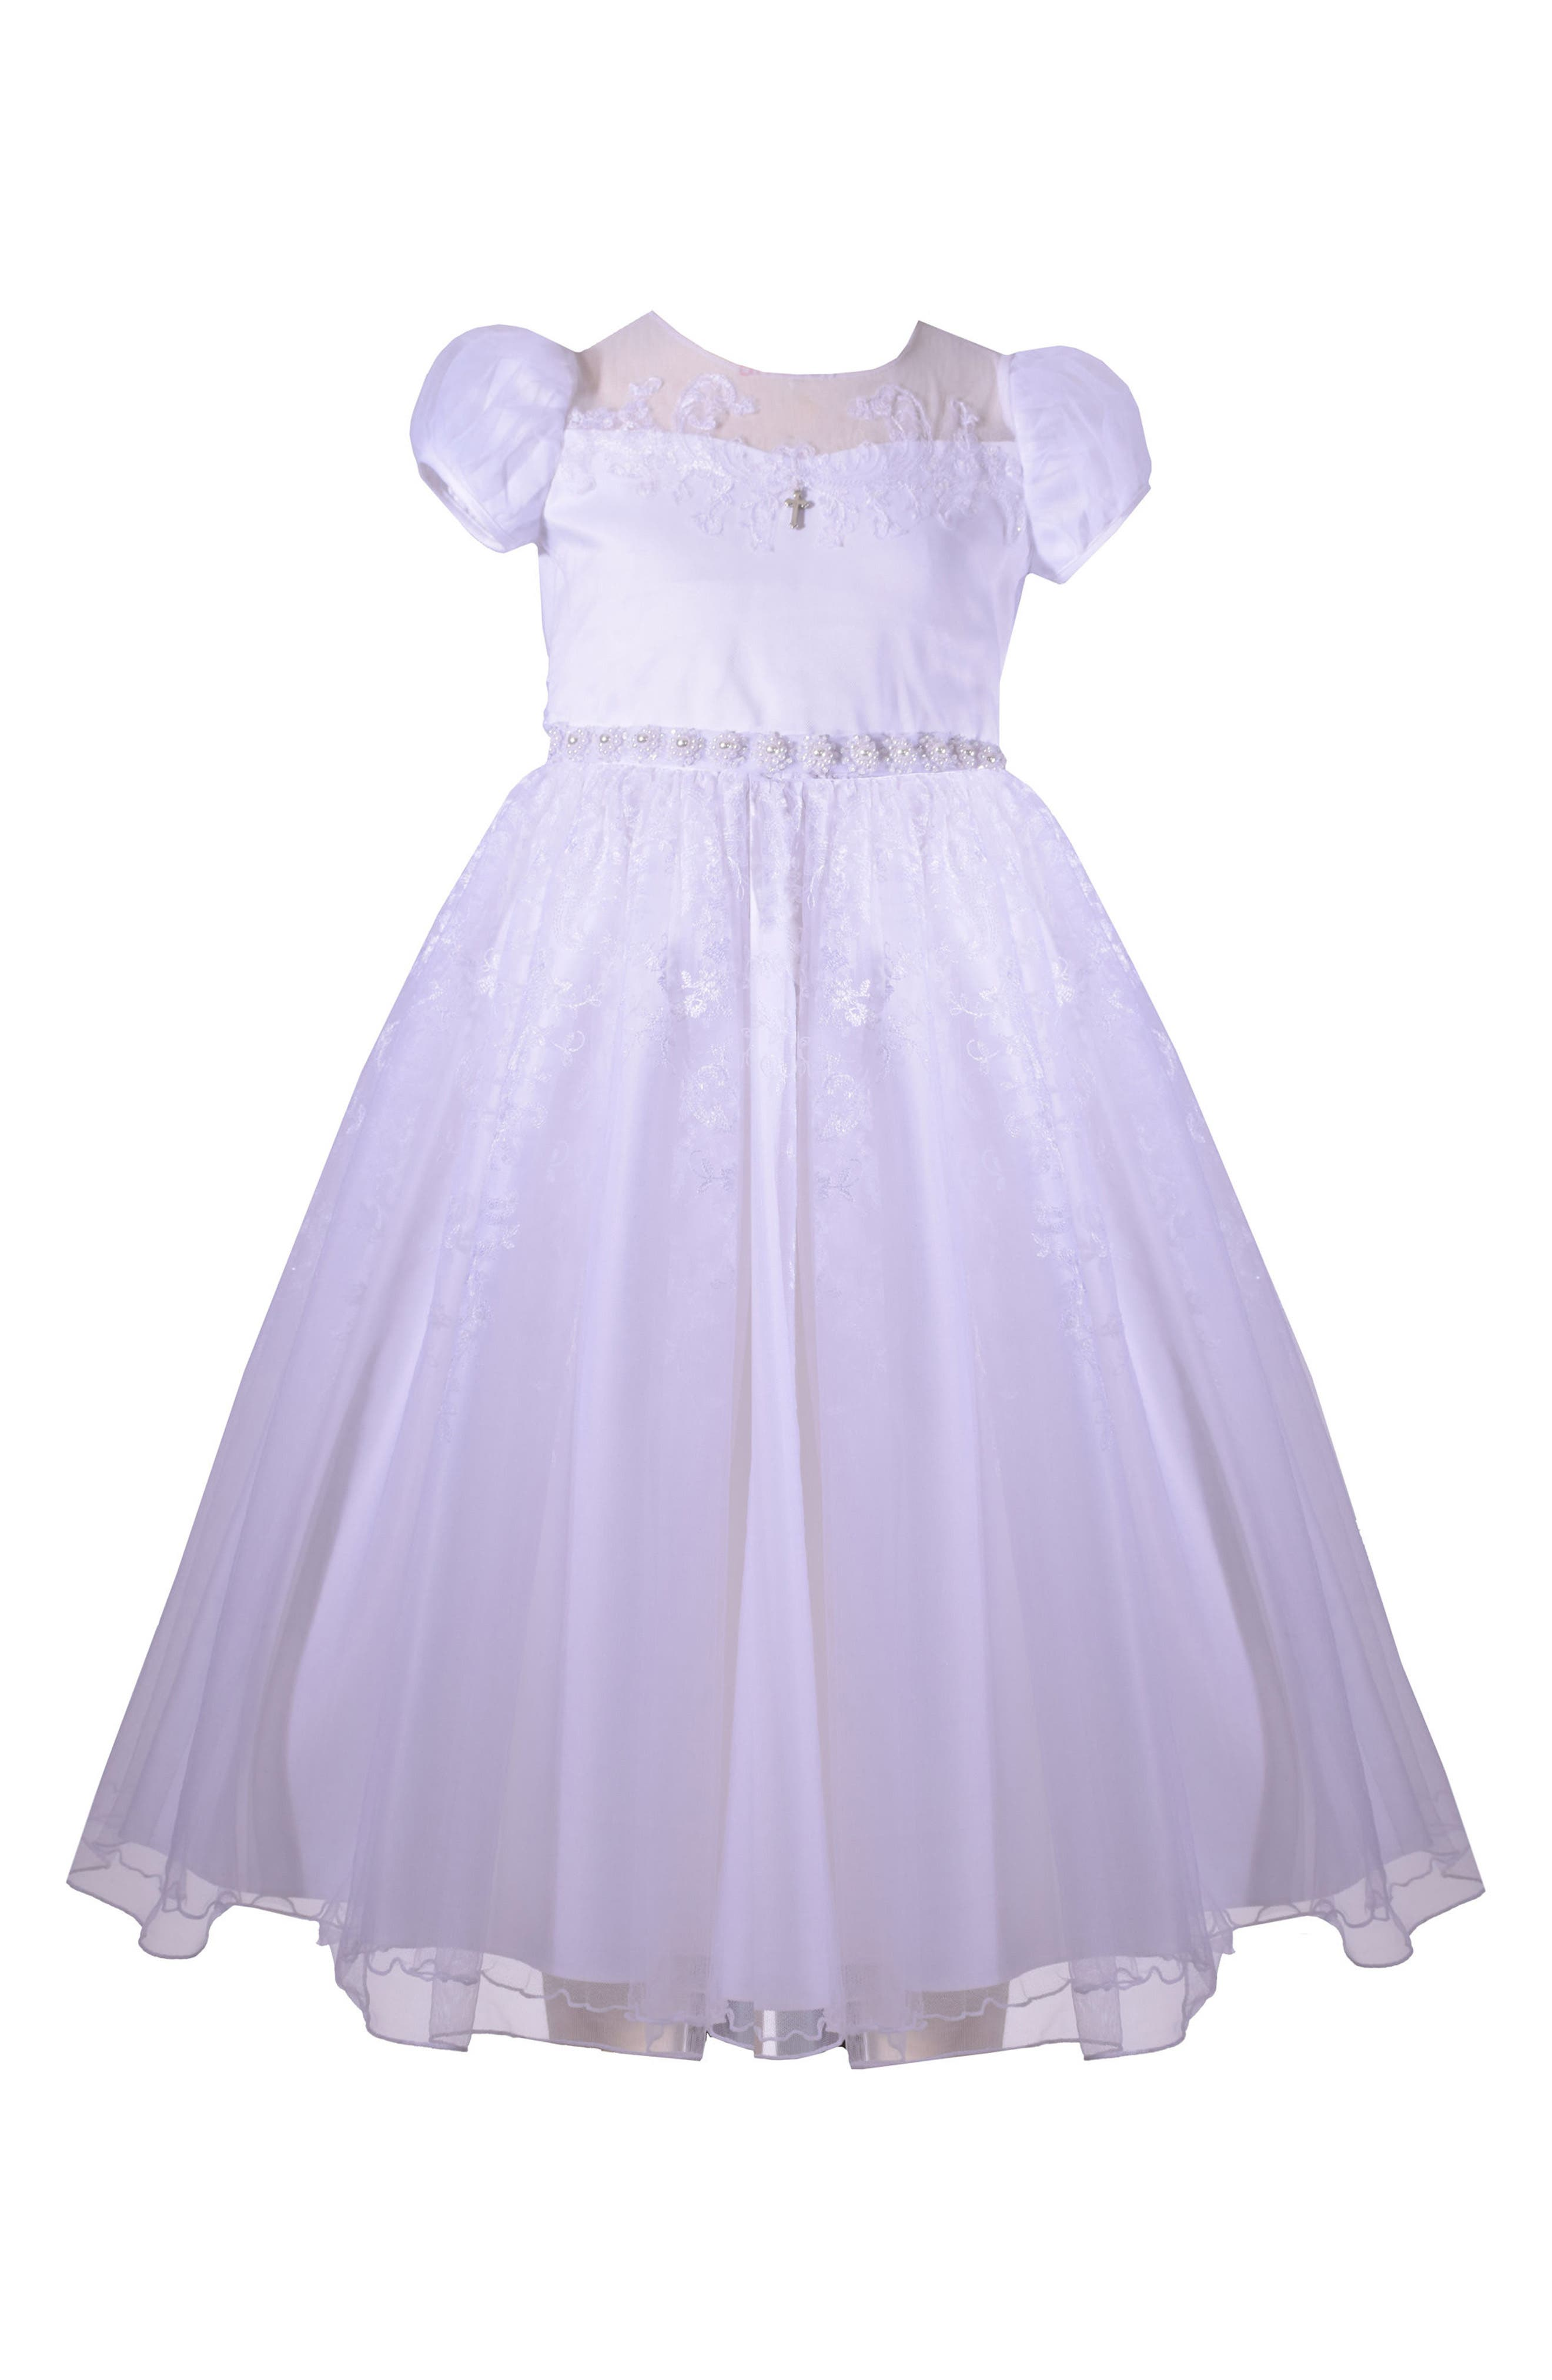 Puff Sleeve First Communion Dress,                             Main thumbnail 1, color,                             100